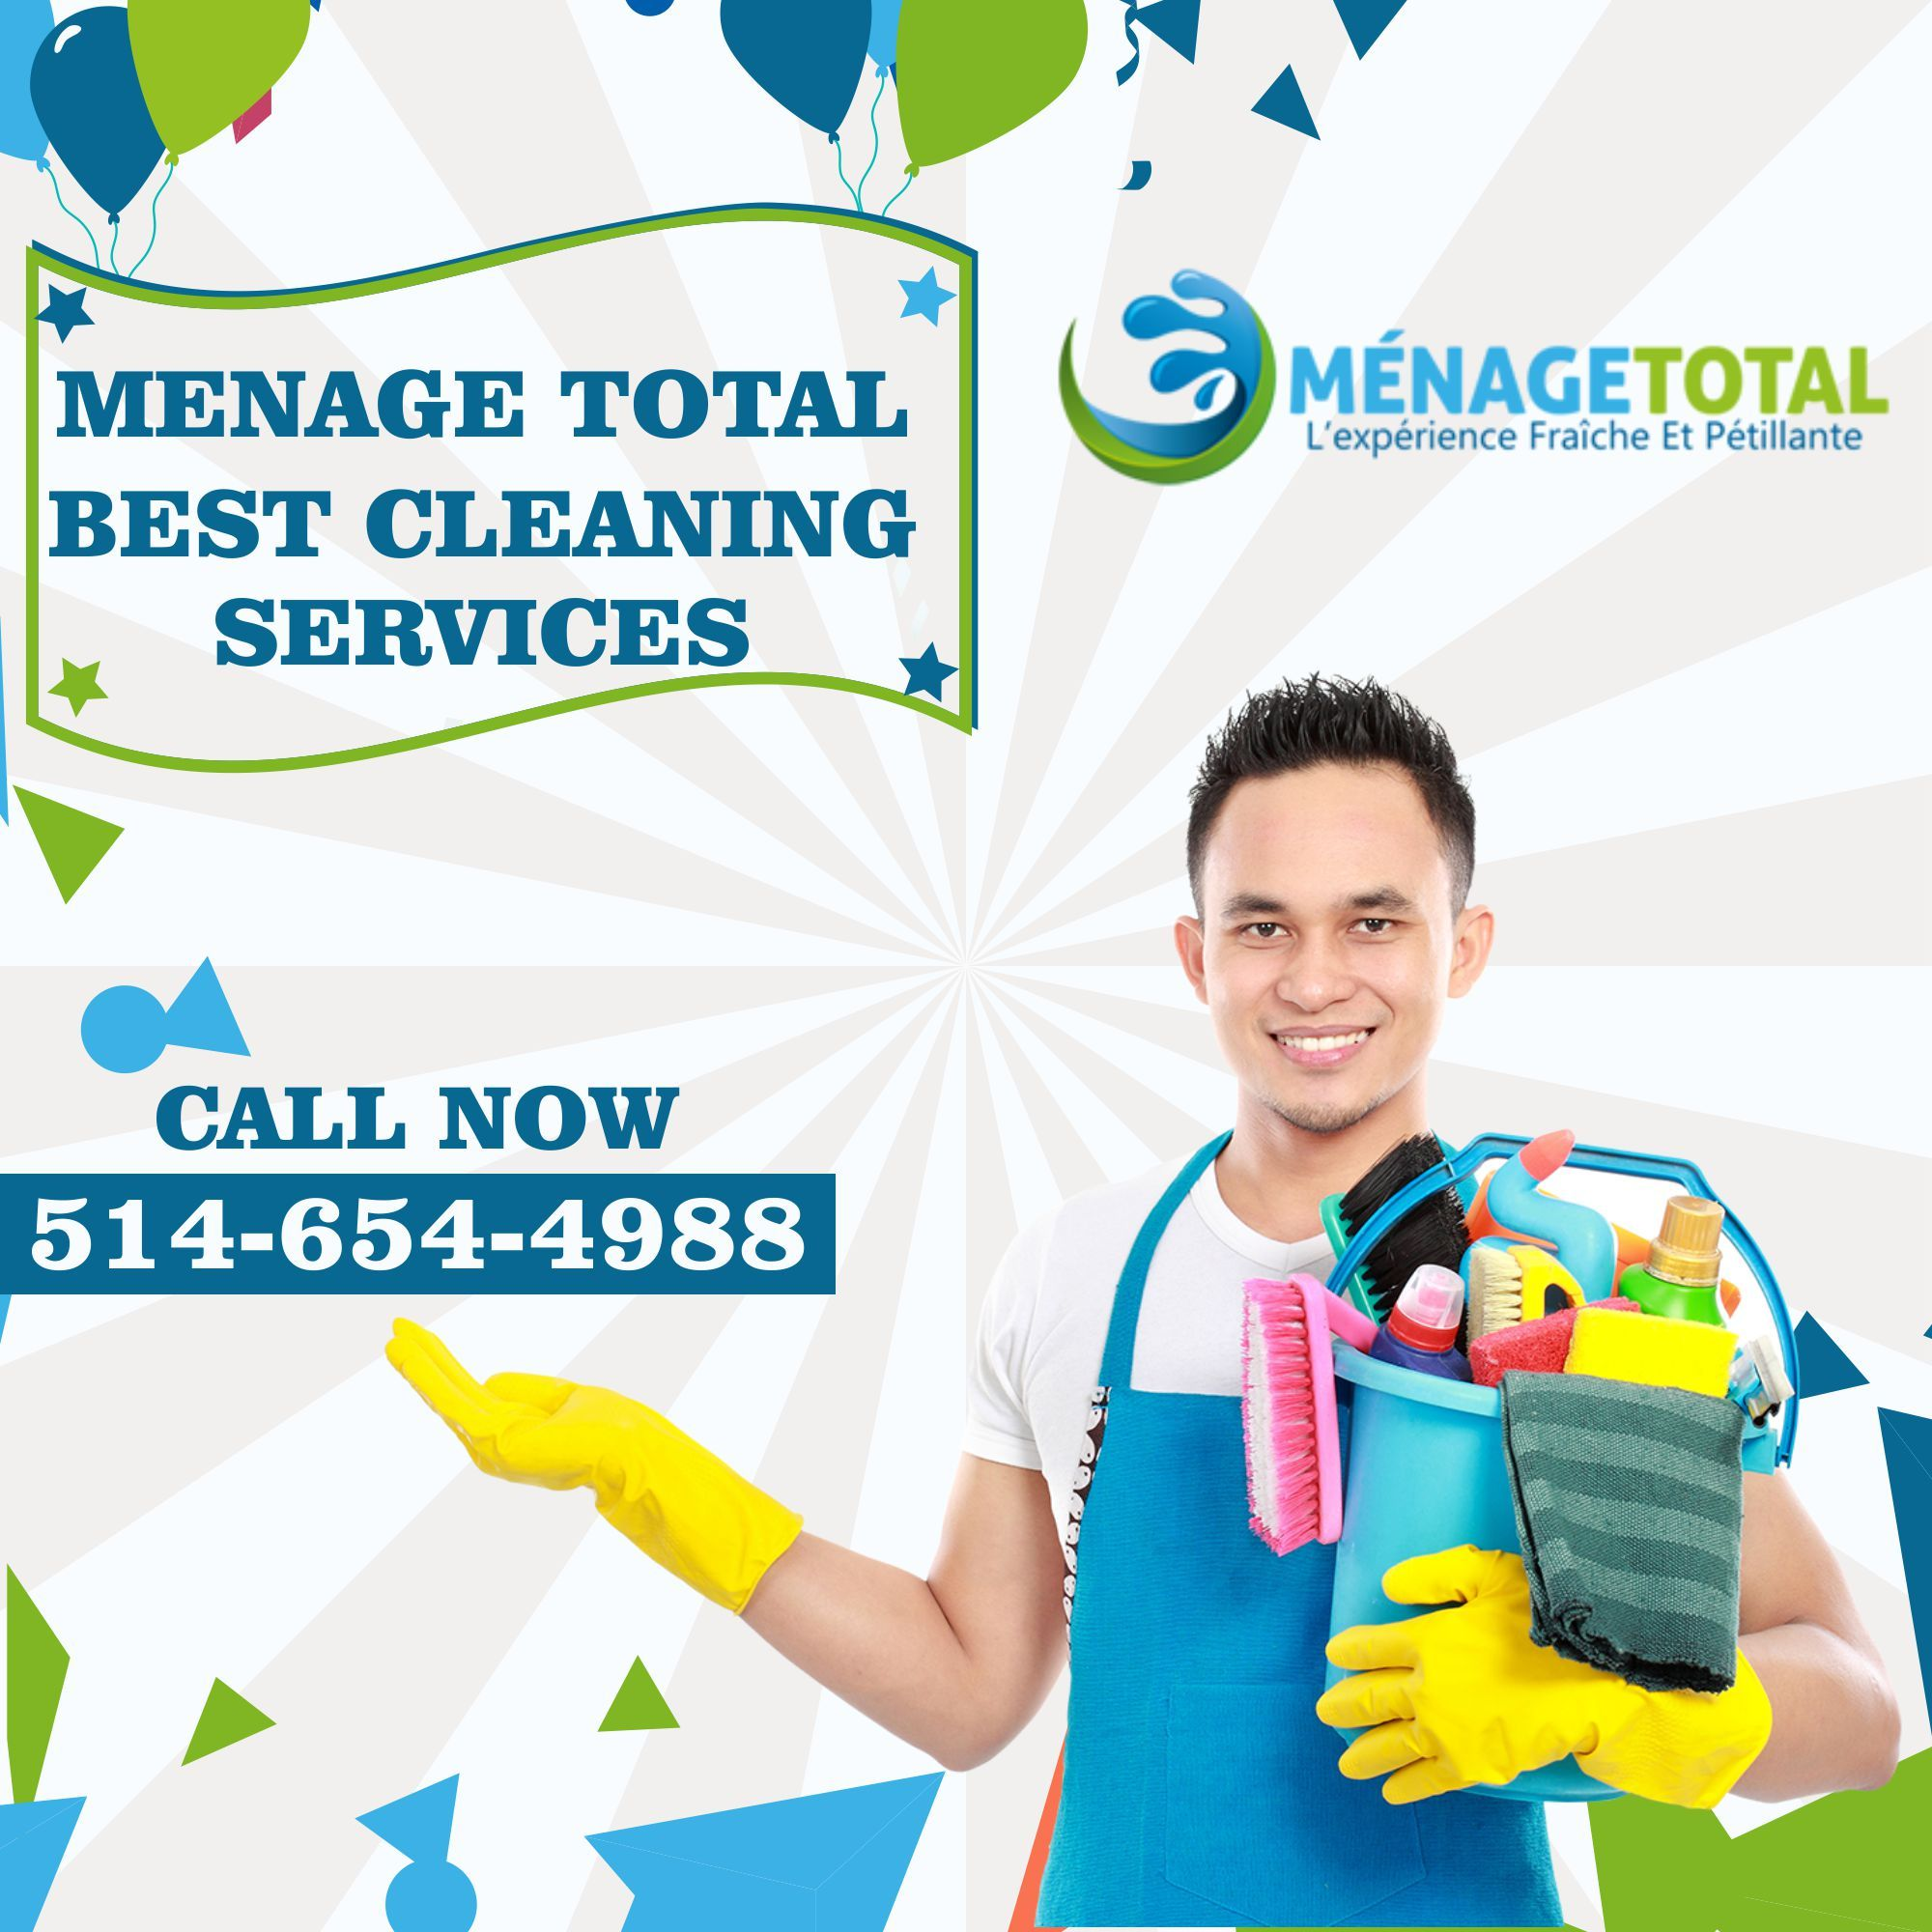 Menage Total Best Cleaning Service